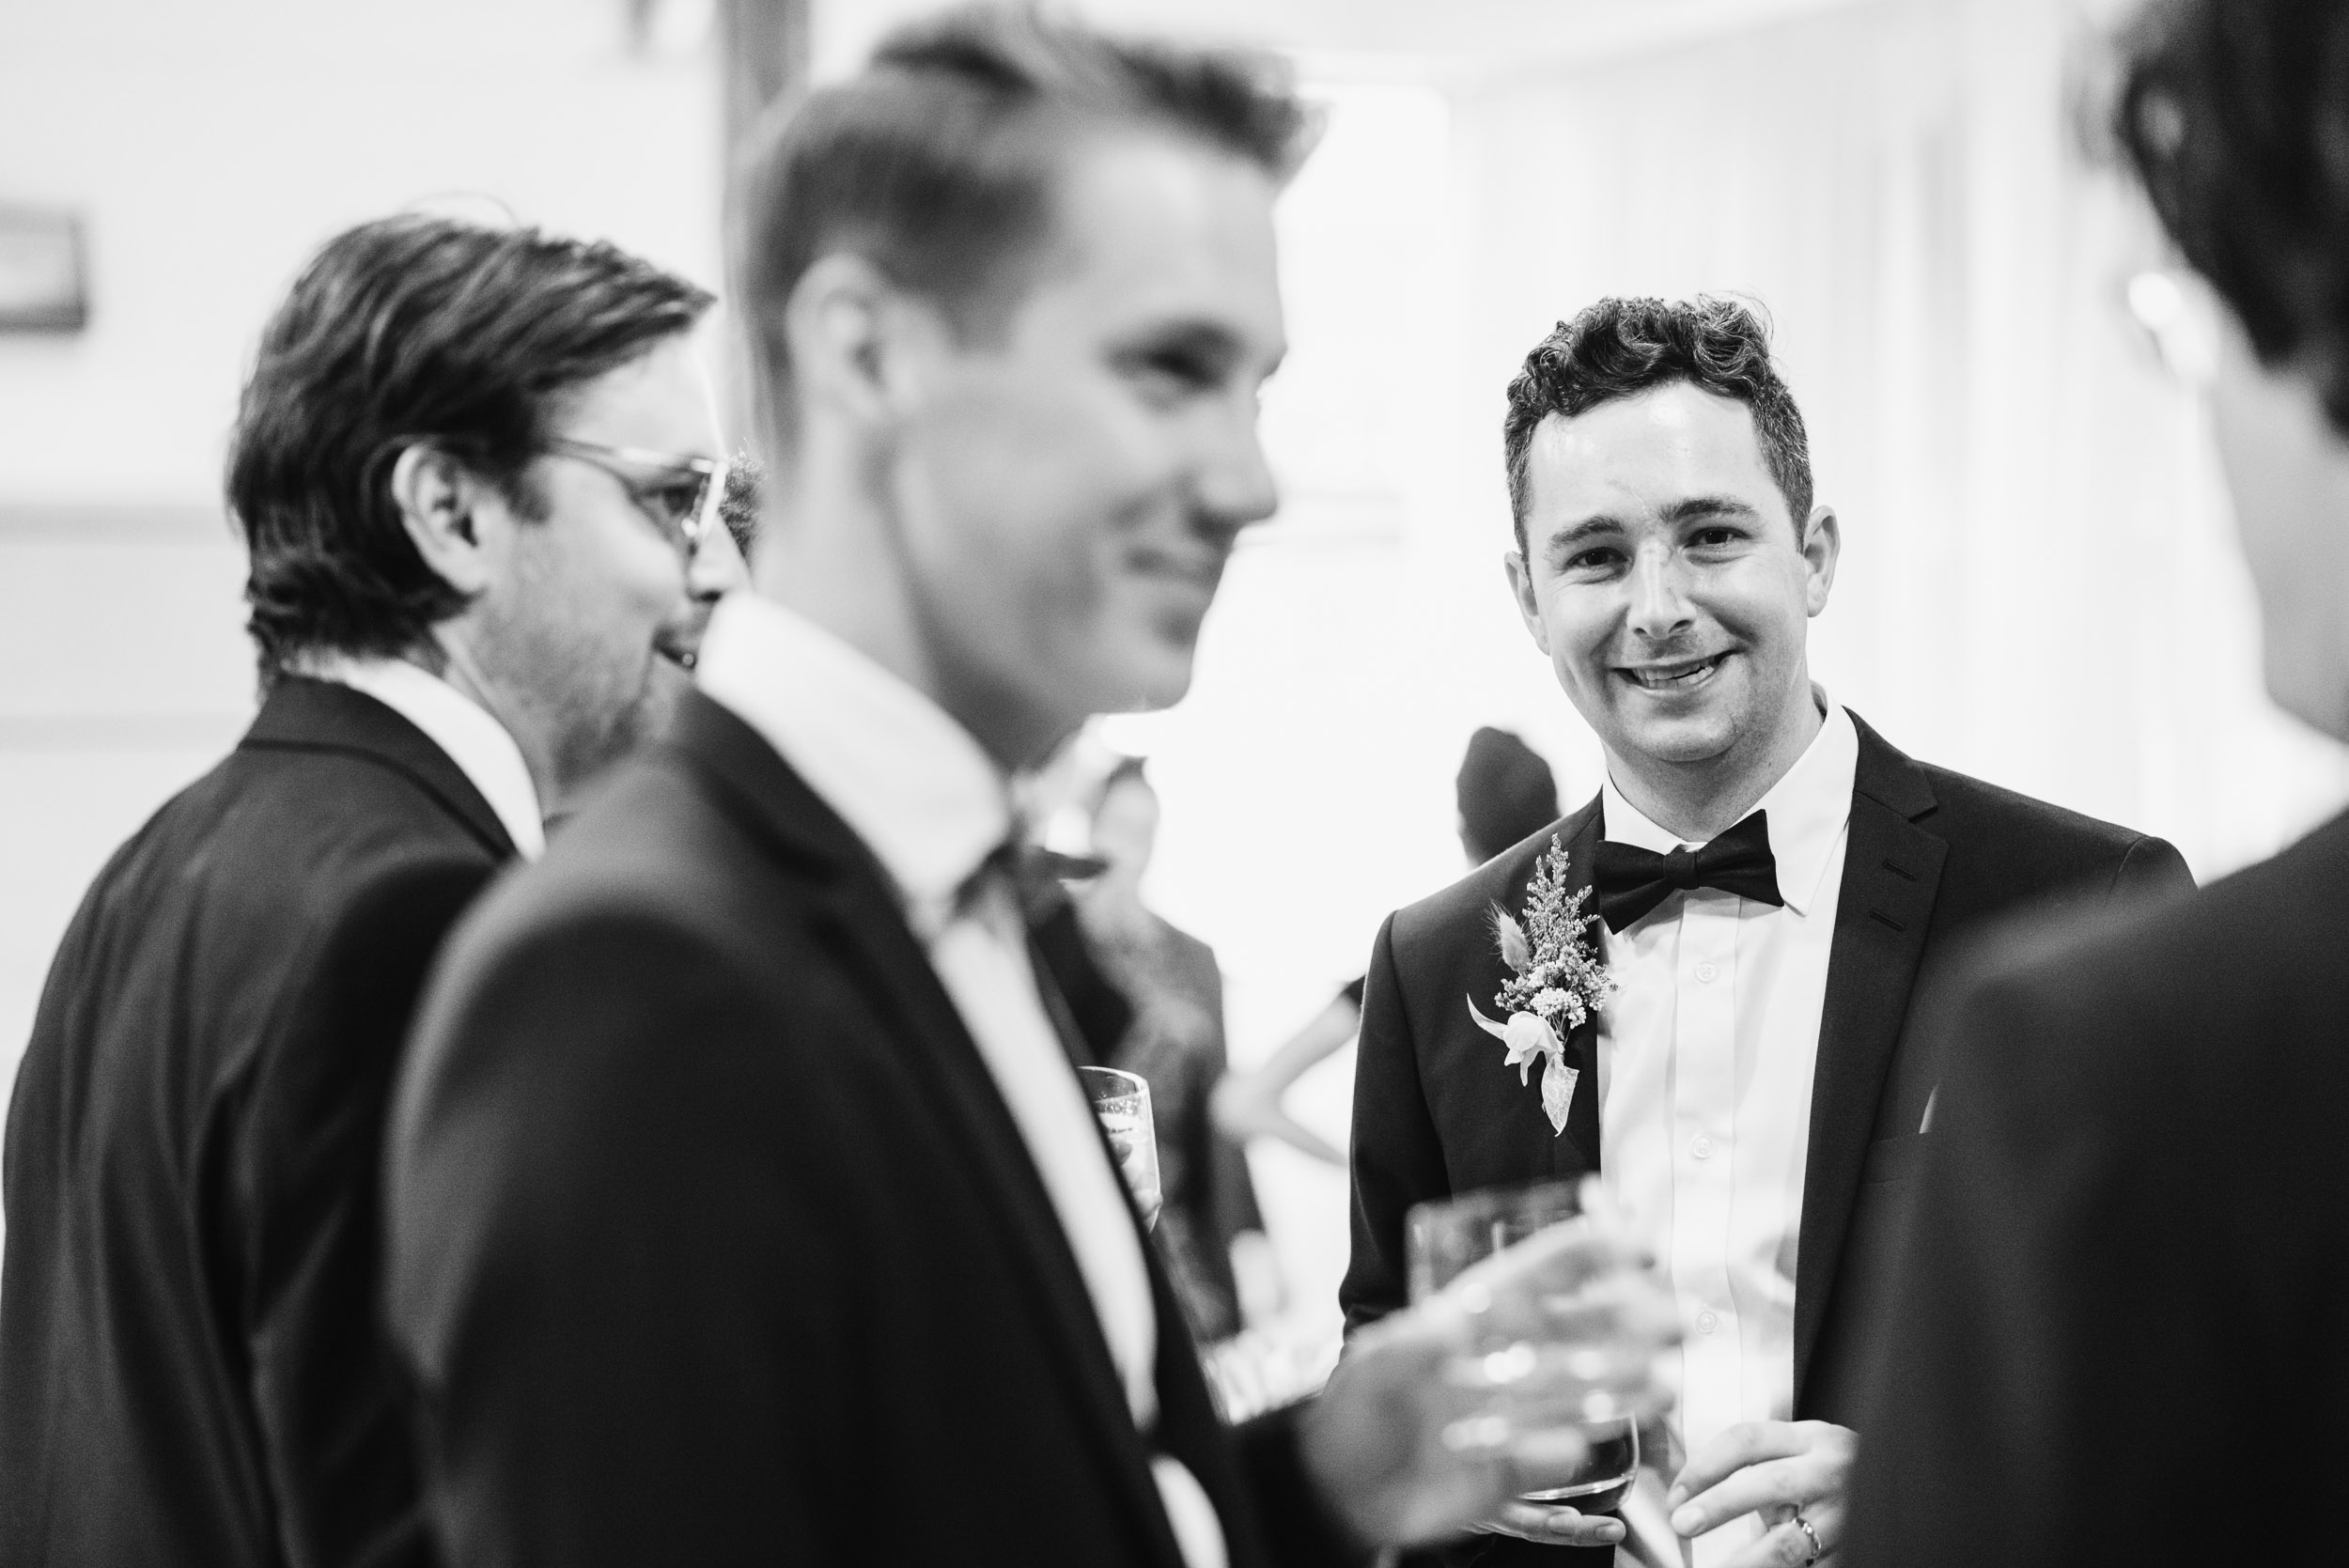 Groom socializing during reception